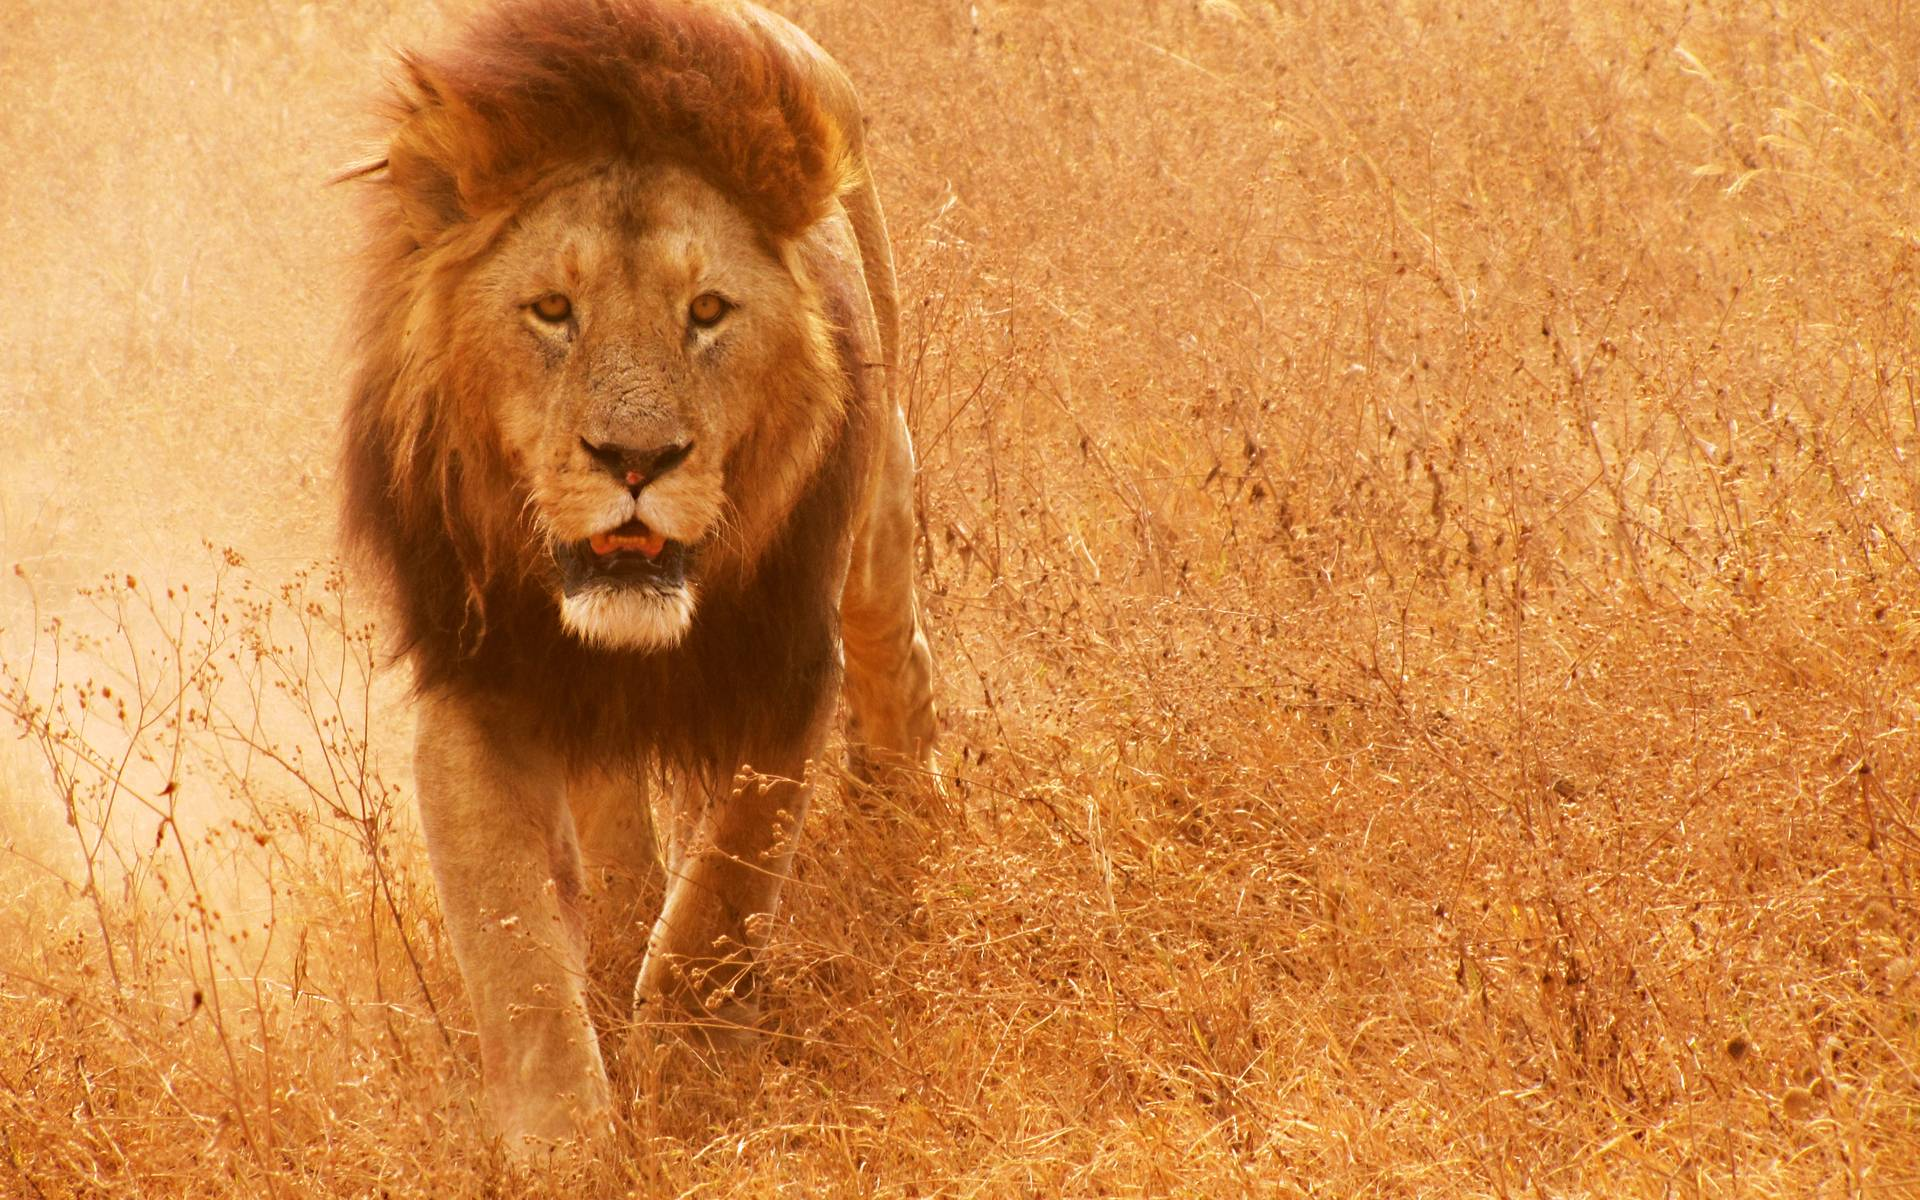 Lion Hd wallpaper - 1101530